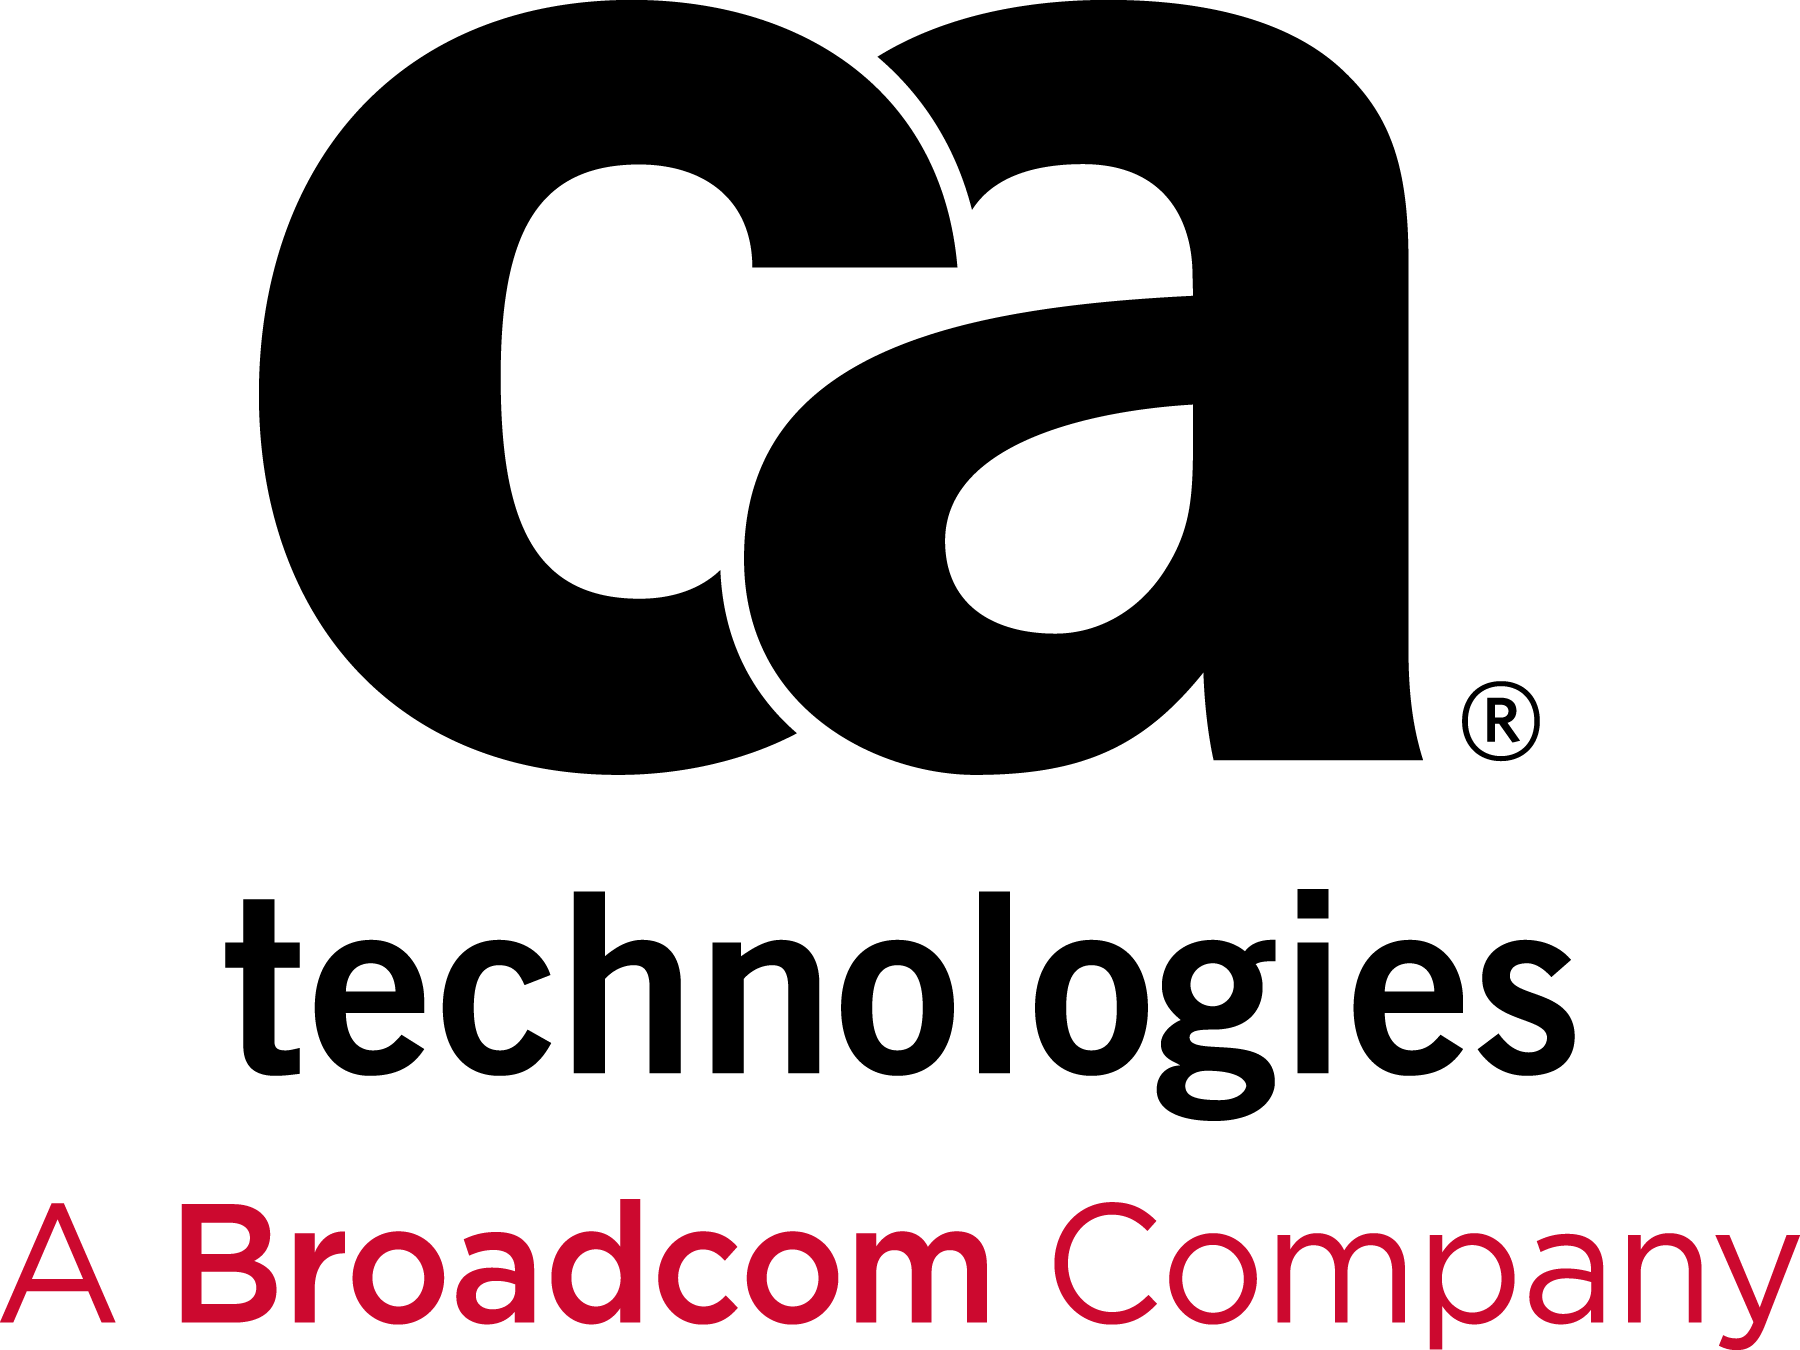 CA-Broadcom_Stacked_red-black